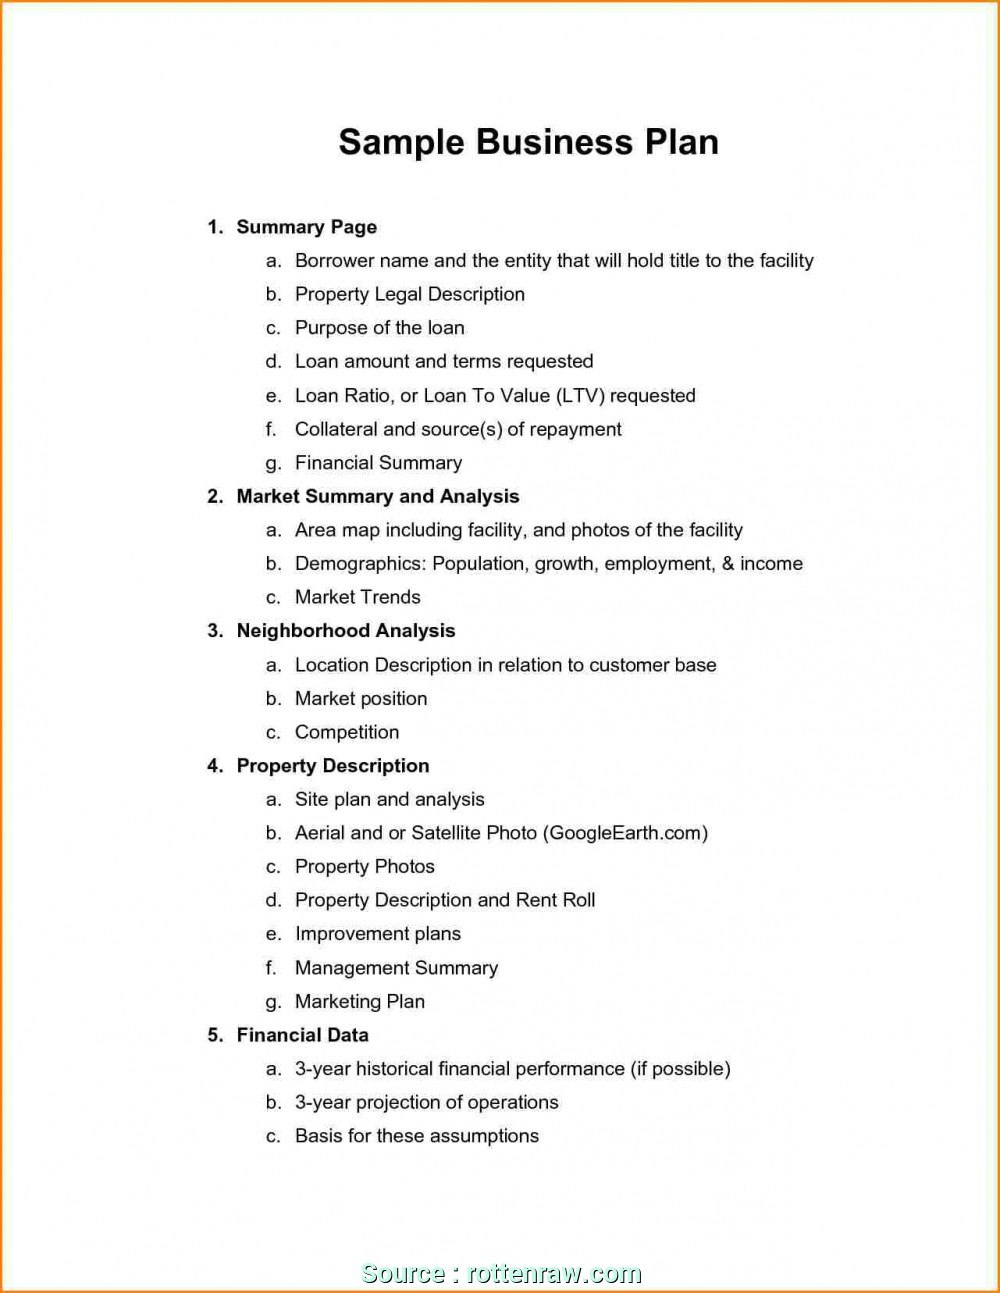 Free Daycare Business Plan Plans Ild Care Template Ppt Day Center Regarding Daycare Business Plan Template Free Download